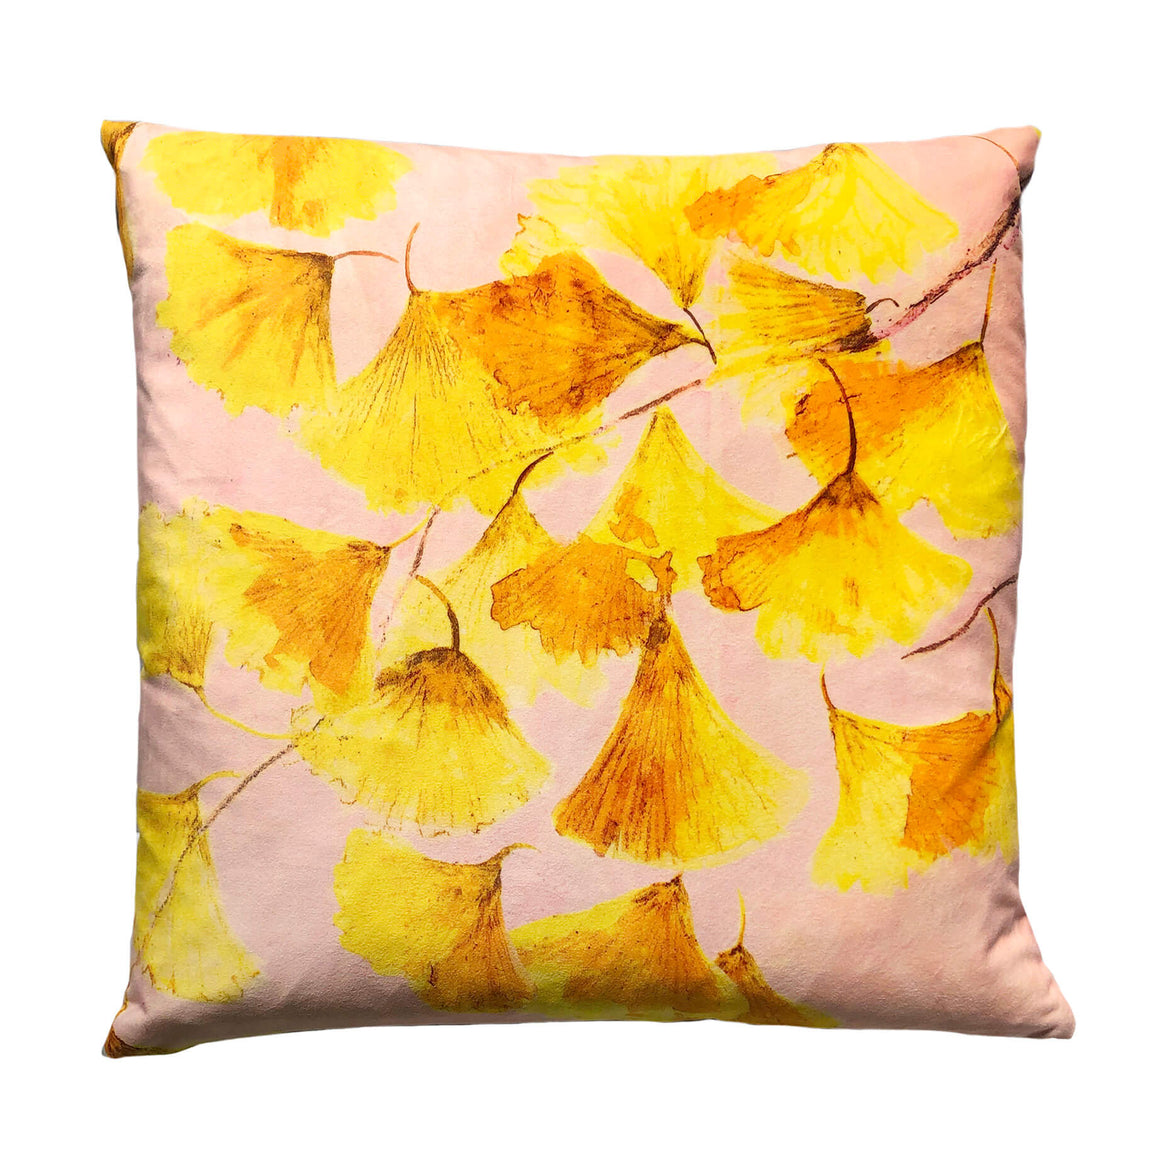 Yellow velvet cushion - Ginkgo in Sunshine - by Anna Jacobs